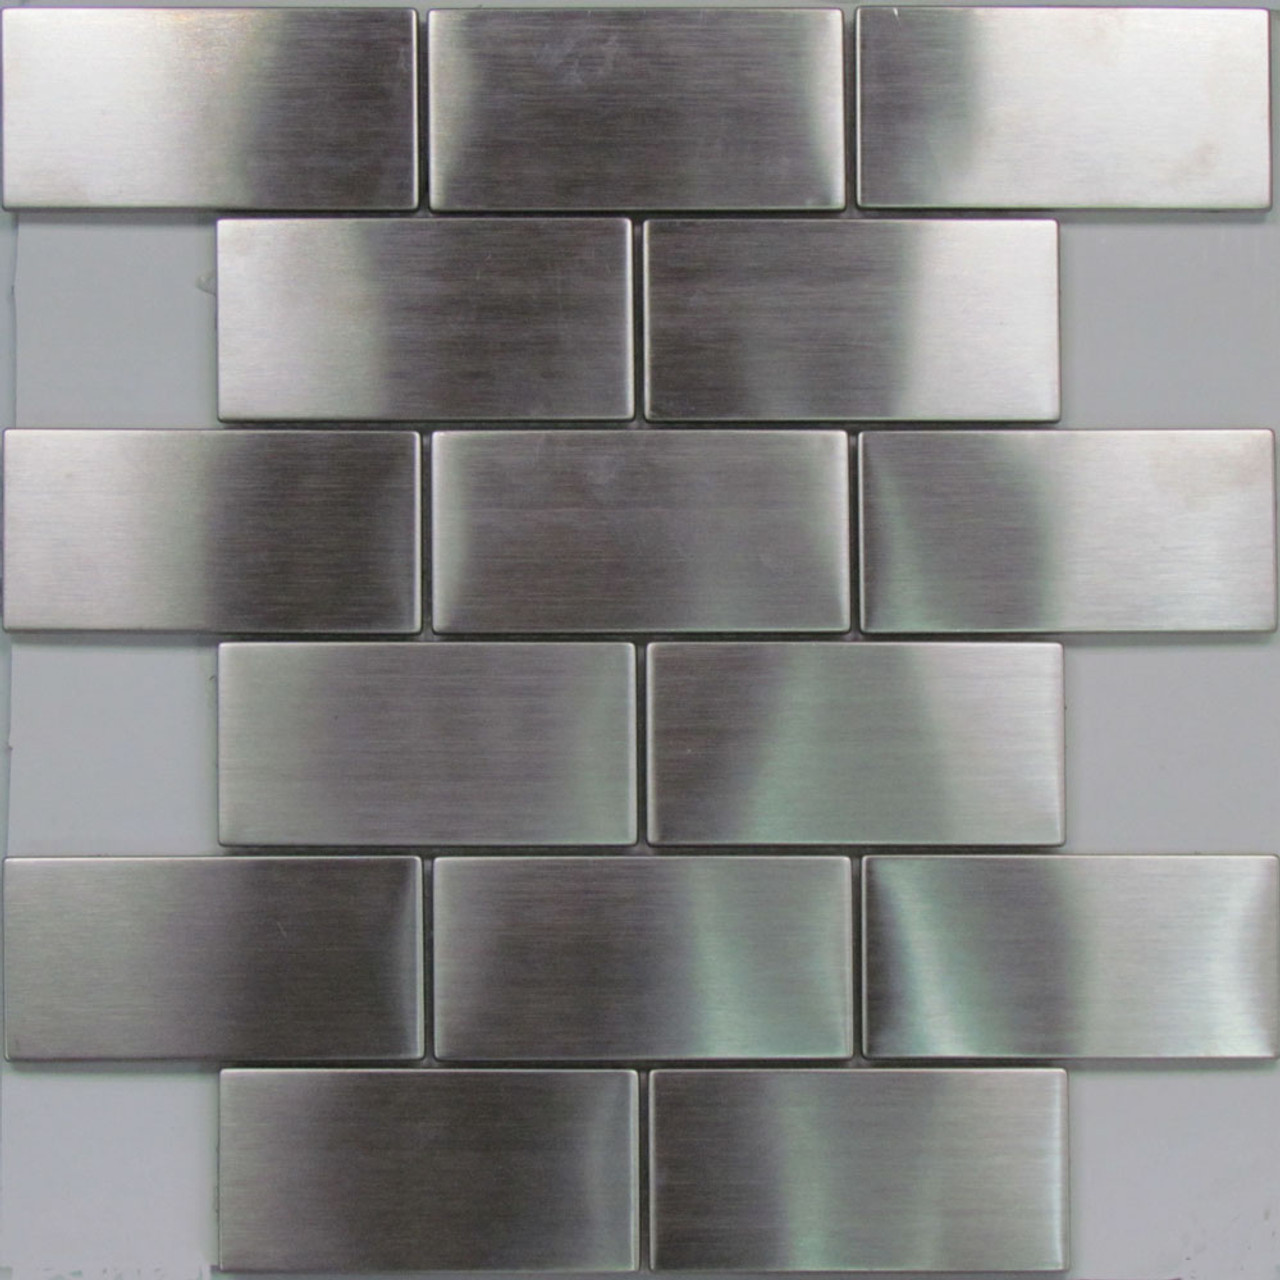 0801 Stainless Steel Subway Mosaic Tiles Exotiles